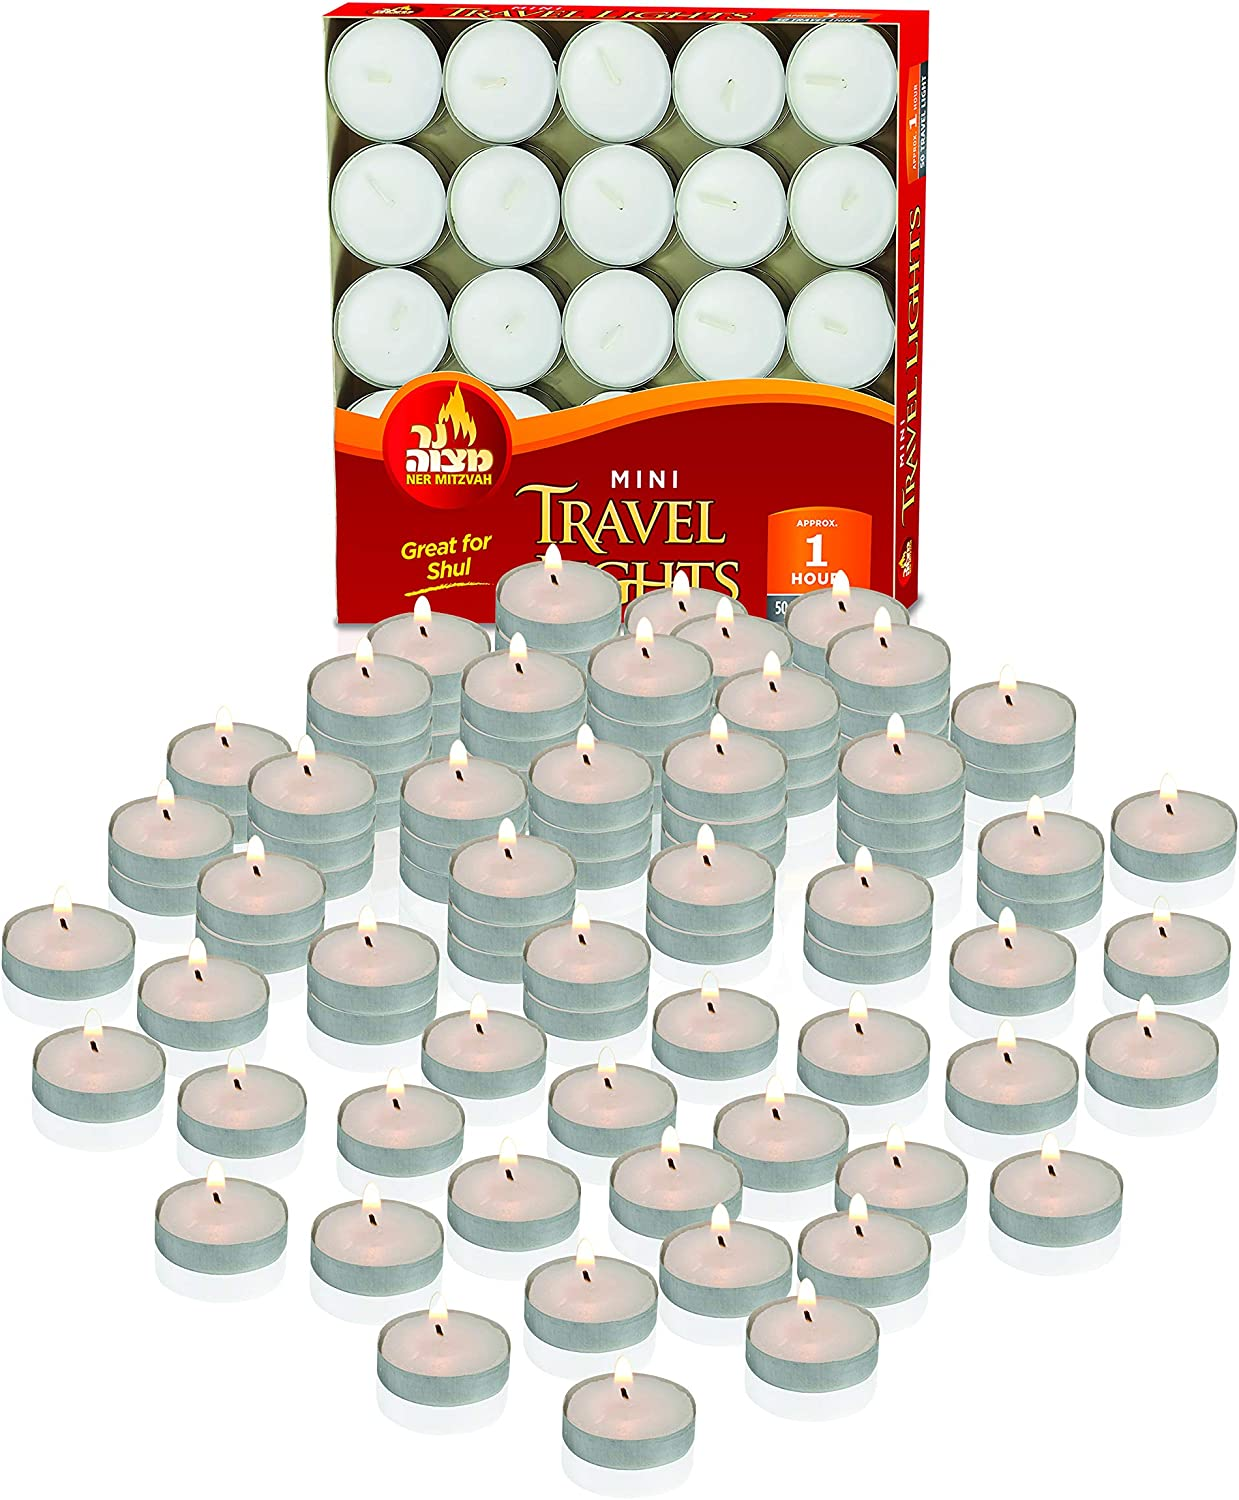 Centerpiece White Unscented Travel 4 Hour Burn Time Pressed Wax Ohr Tea Light Candles 50 Bulk Pack Decorative Candle